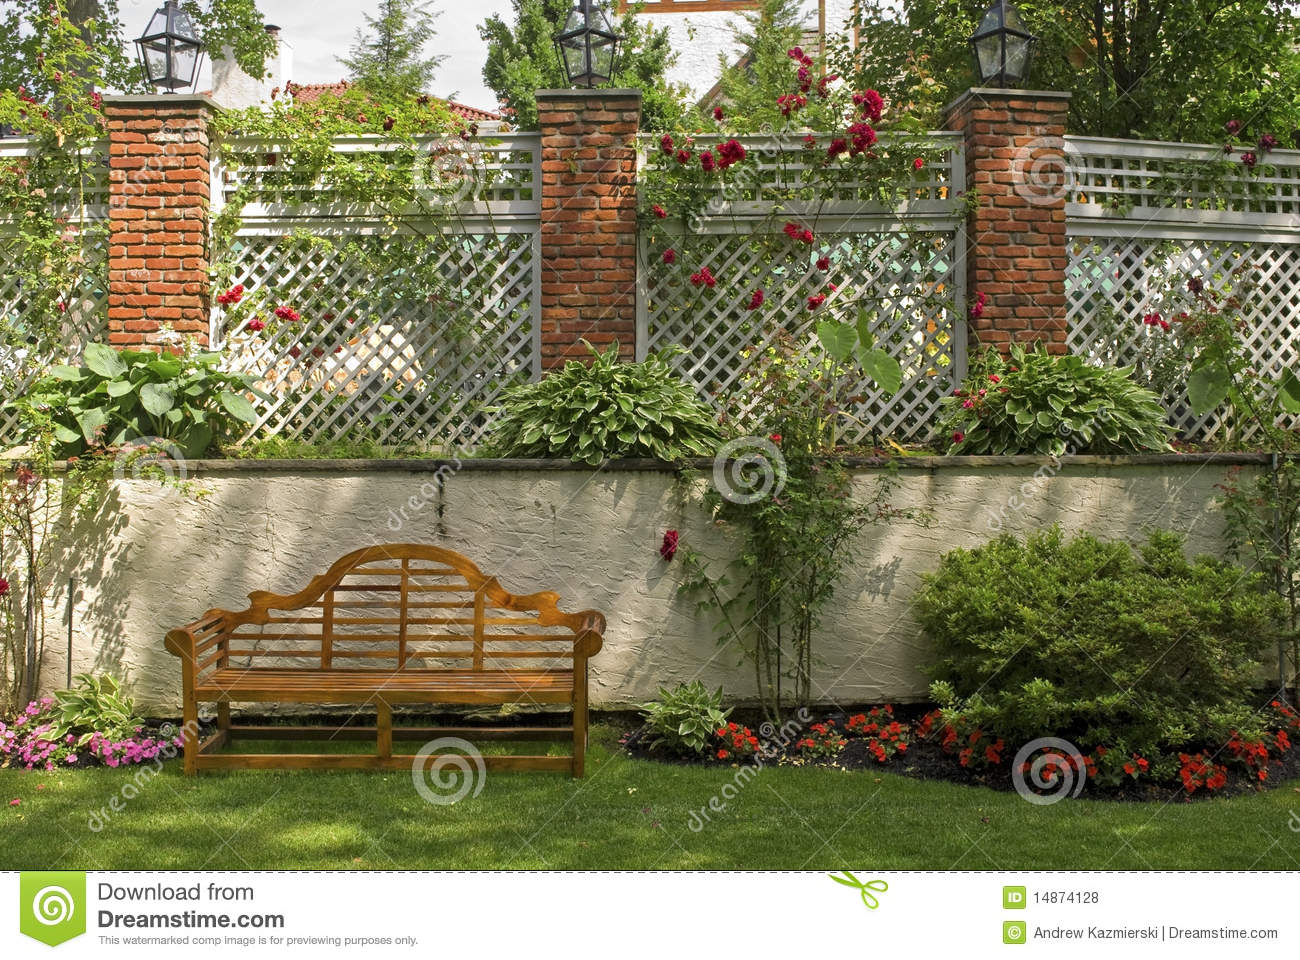 Treillis de jardin photos libres de droits image 14874128 for Treillis jardin